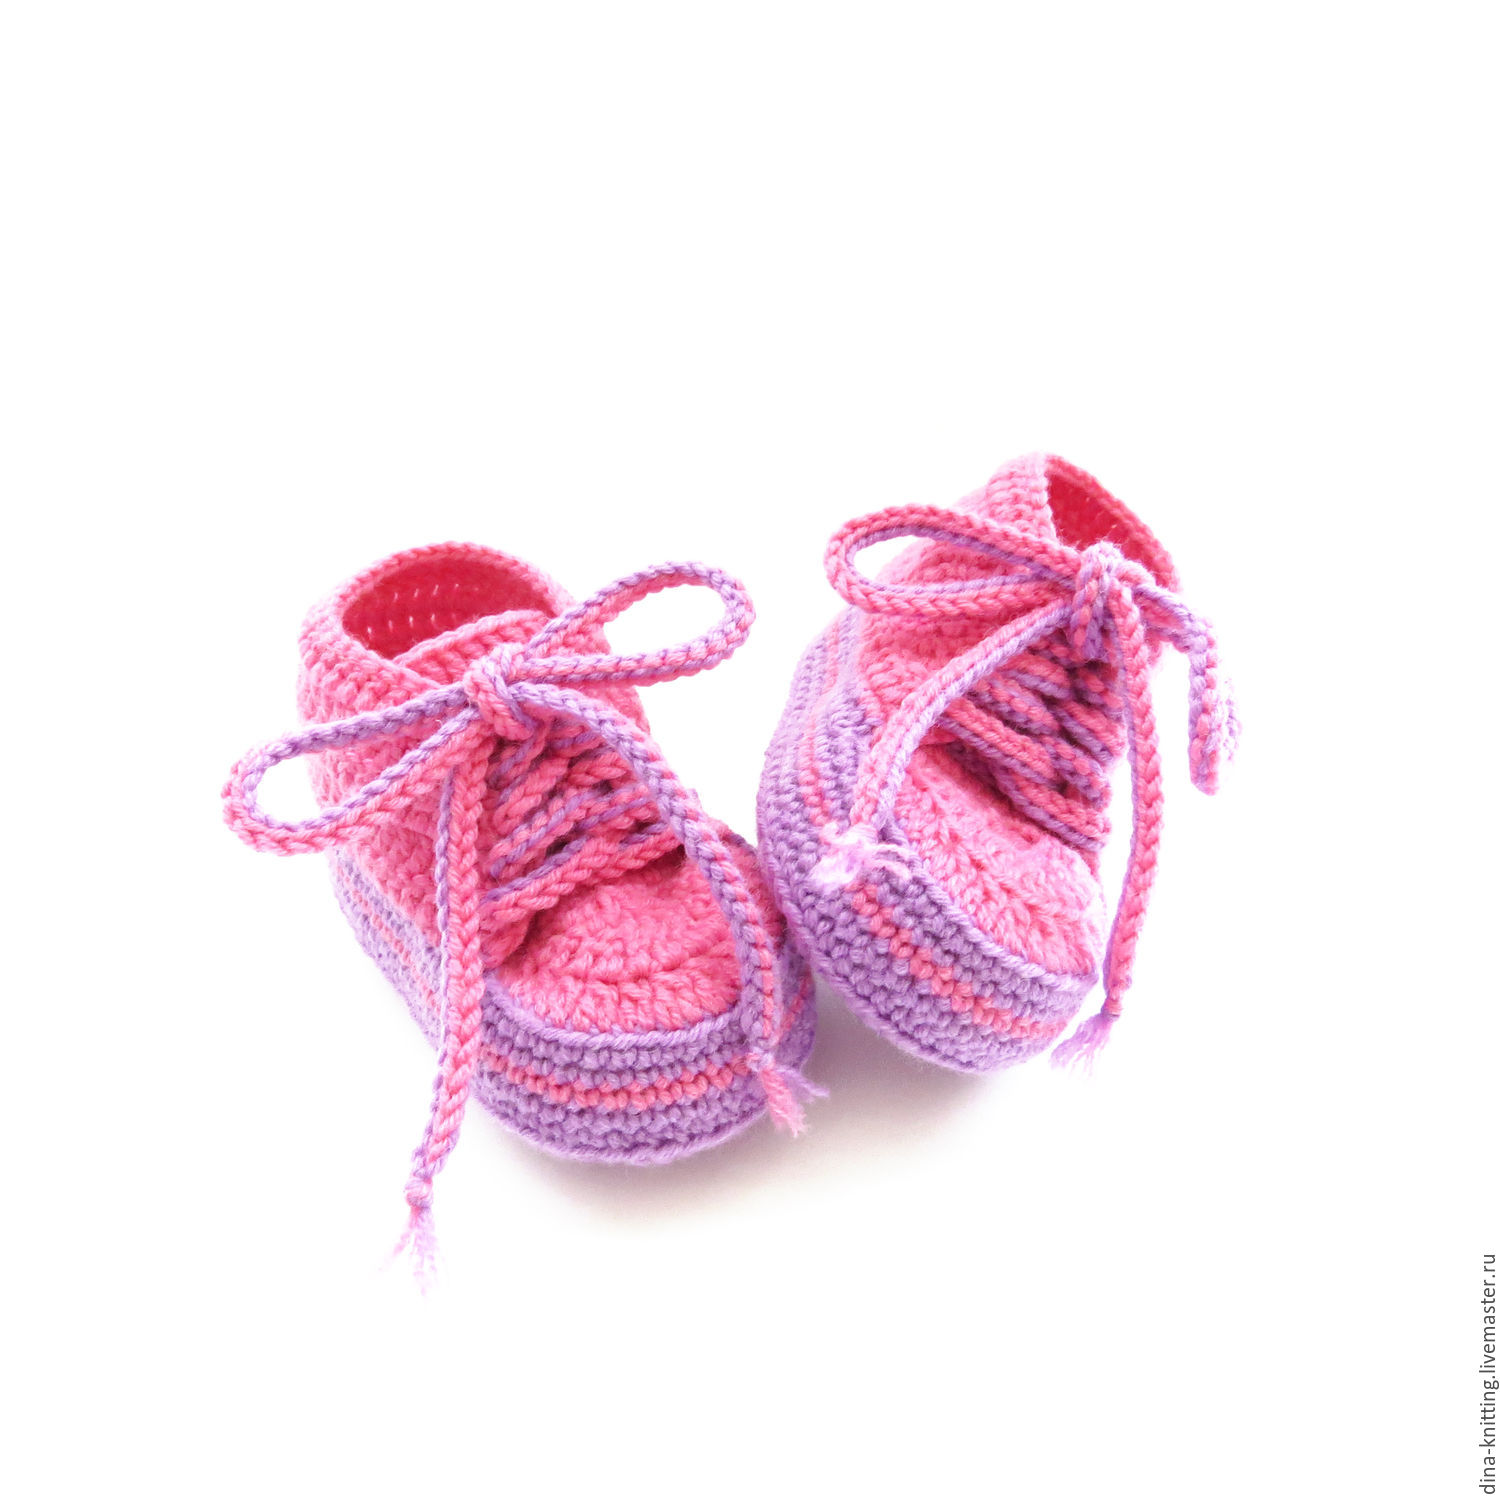 737df15ddff26 booties shoes knitted shoes booties for baby girl gift for birth – shop  online on Livemaster with shipping - 8IC9FCOM | Cheboksary